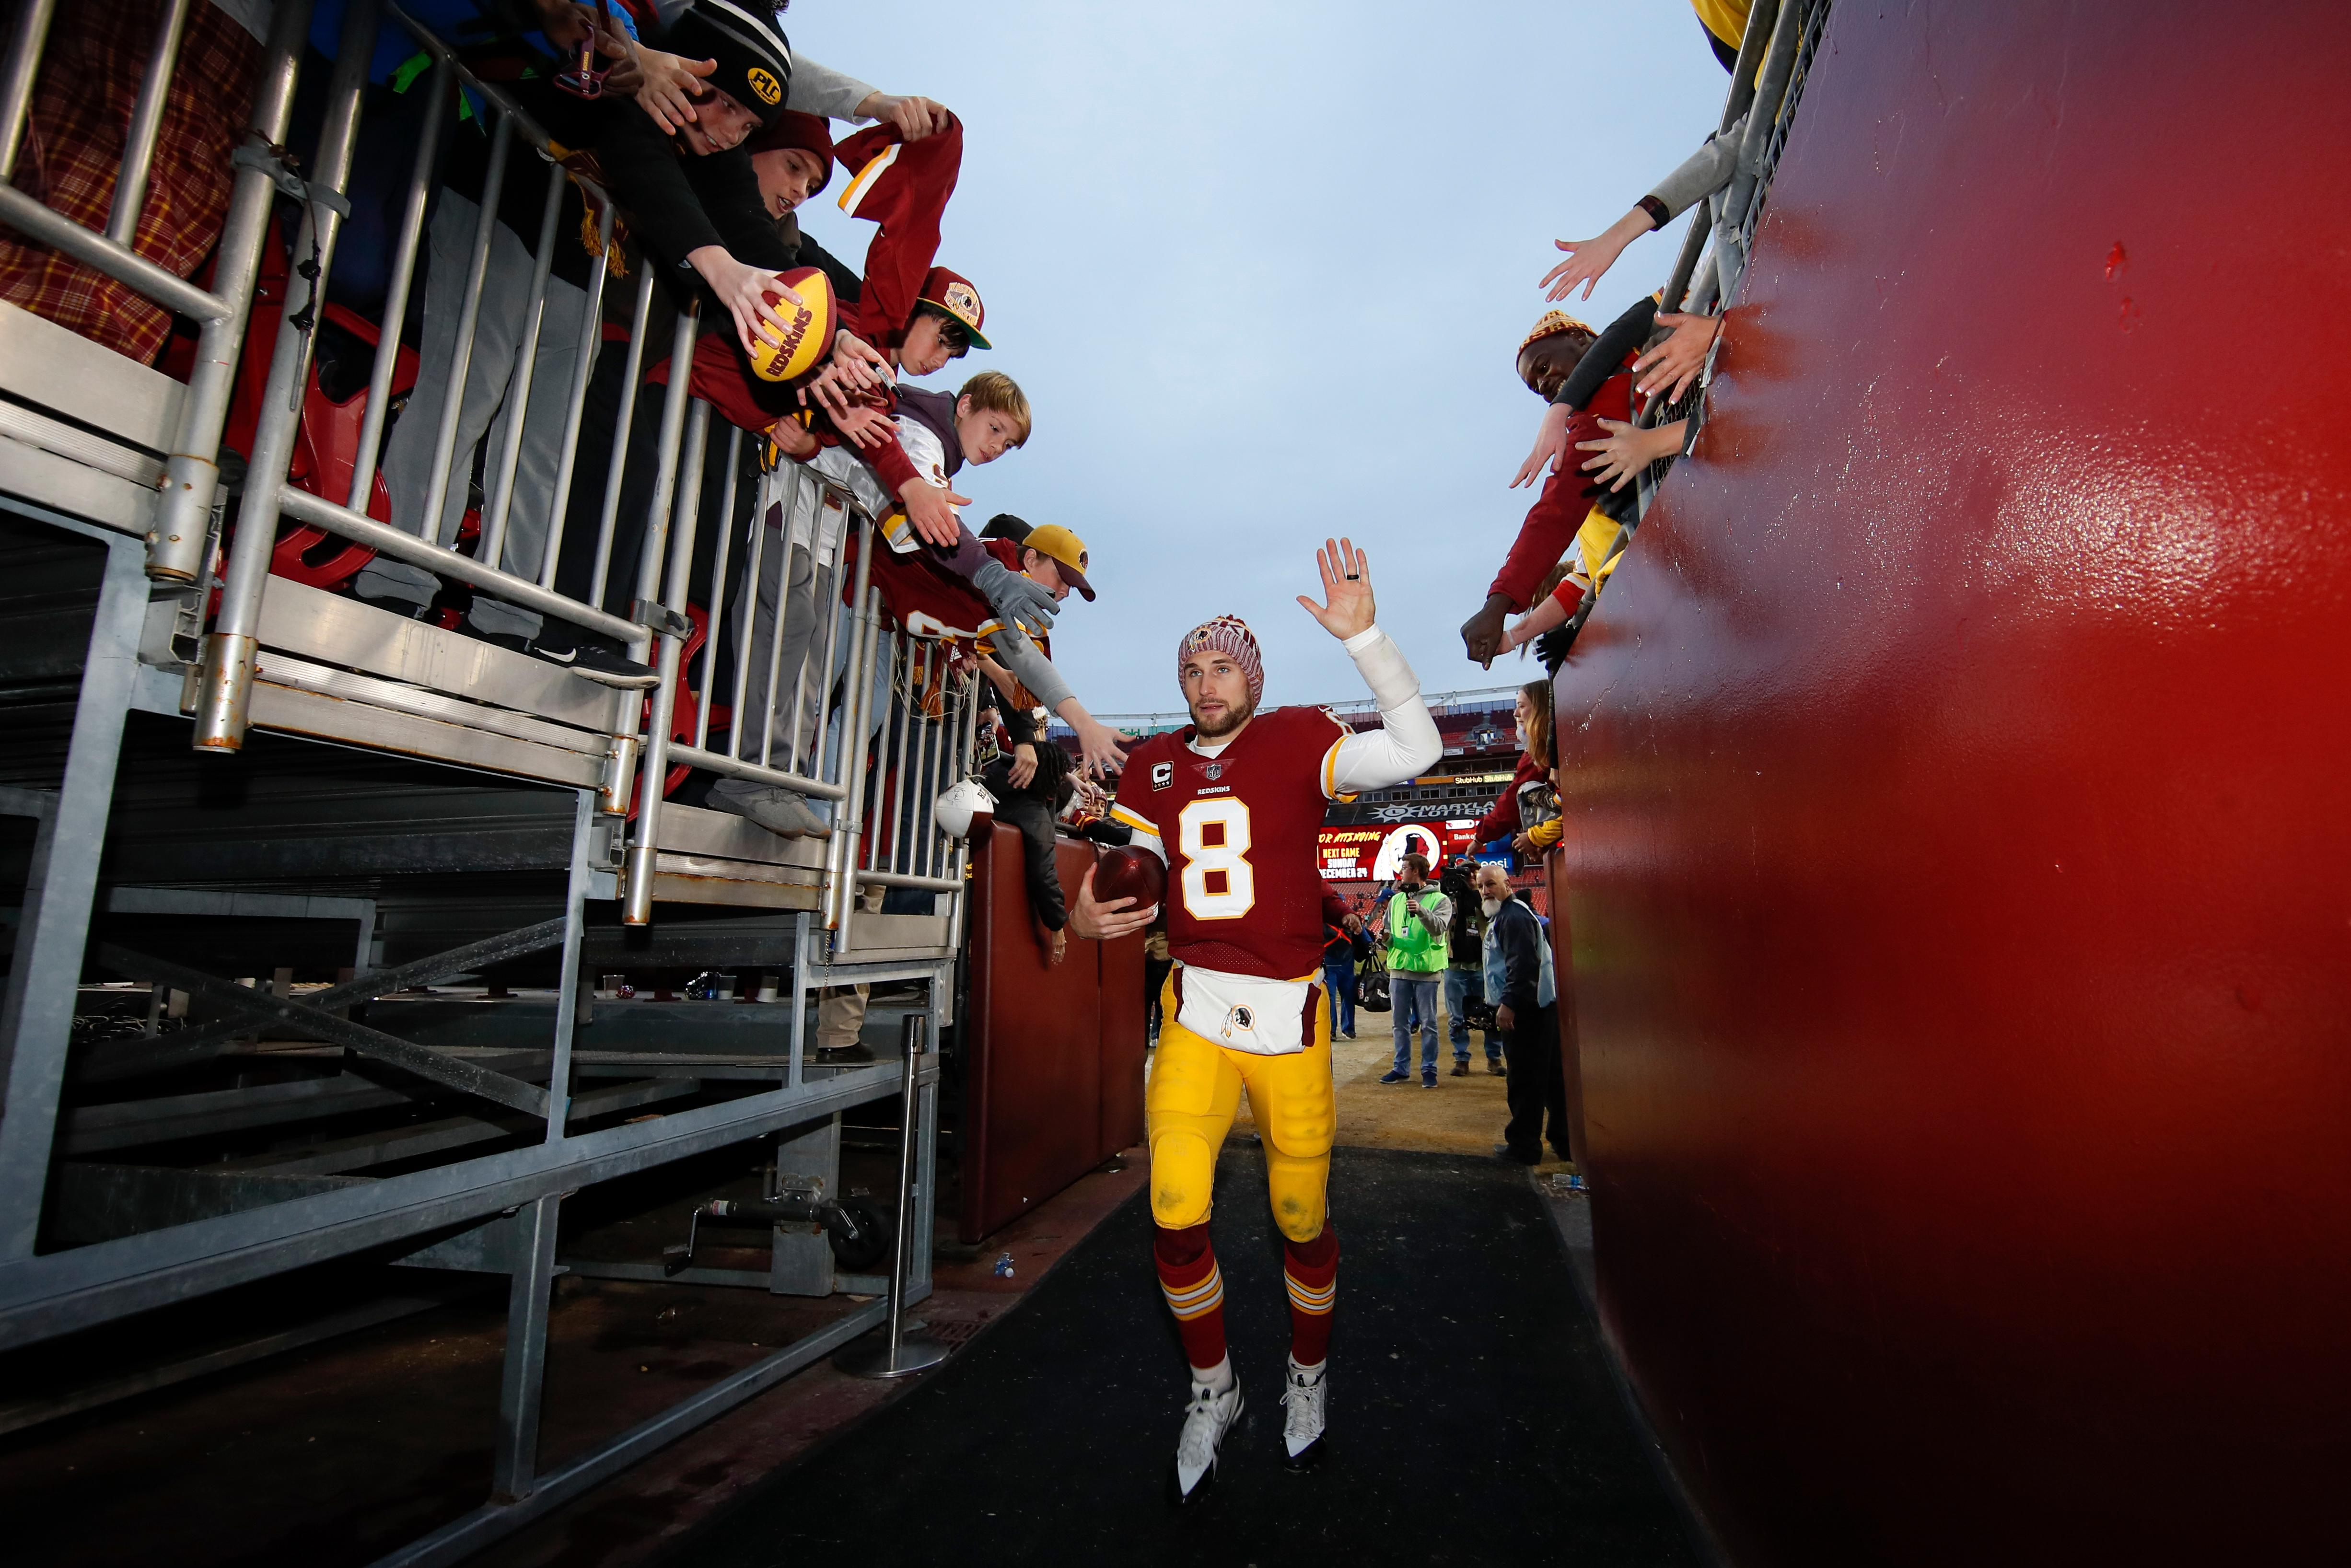 Washington Redskins quarterback Kirk Cousins (8) leaves the field after an NFL football game against Arizona Cardinals in Landover, Md., Sunday, Dec 17, 2017. The Redskins defeated the Cardinals 20-15. (AP Photo/Alex Brandon)